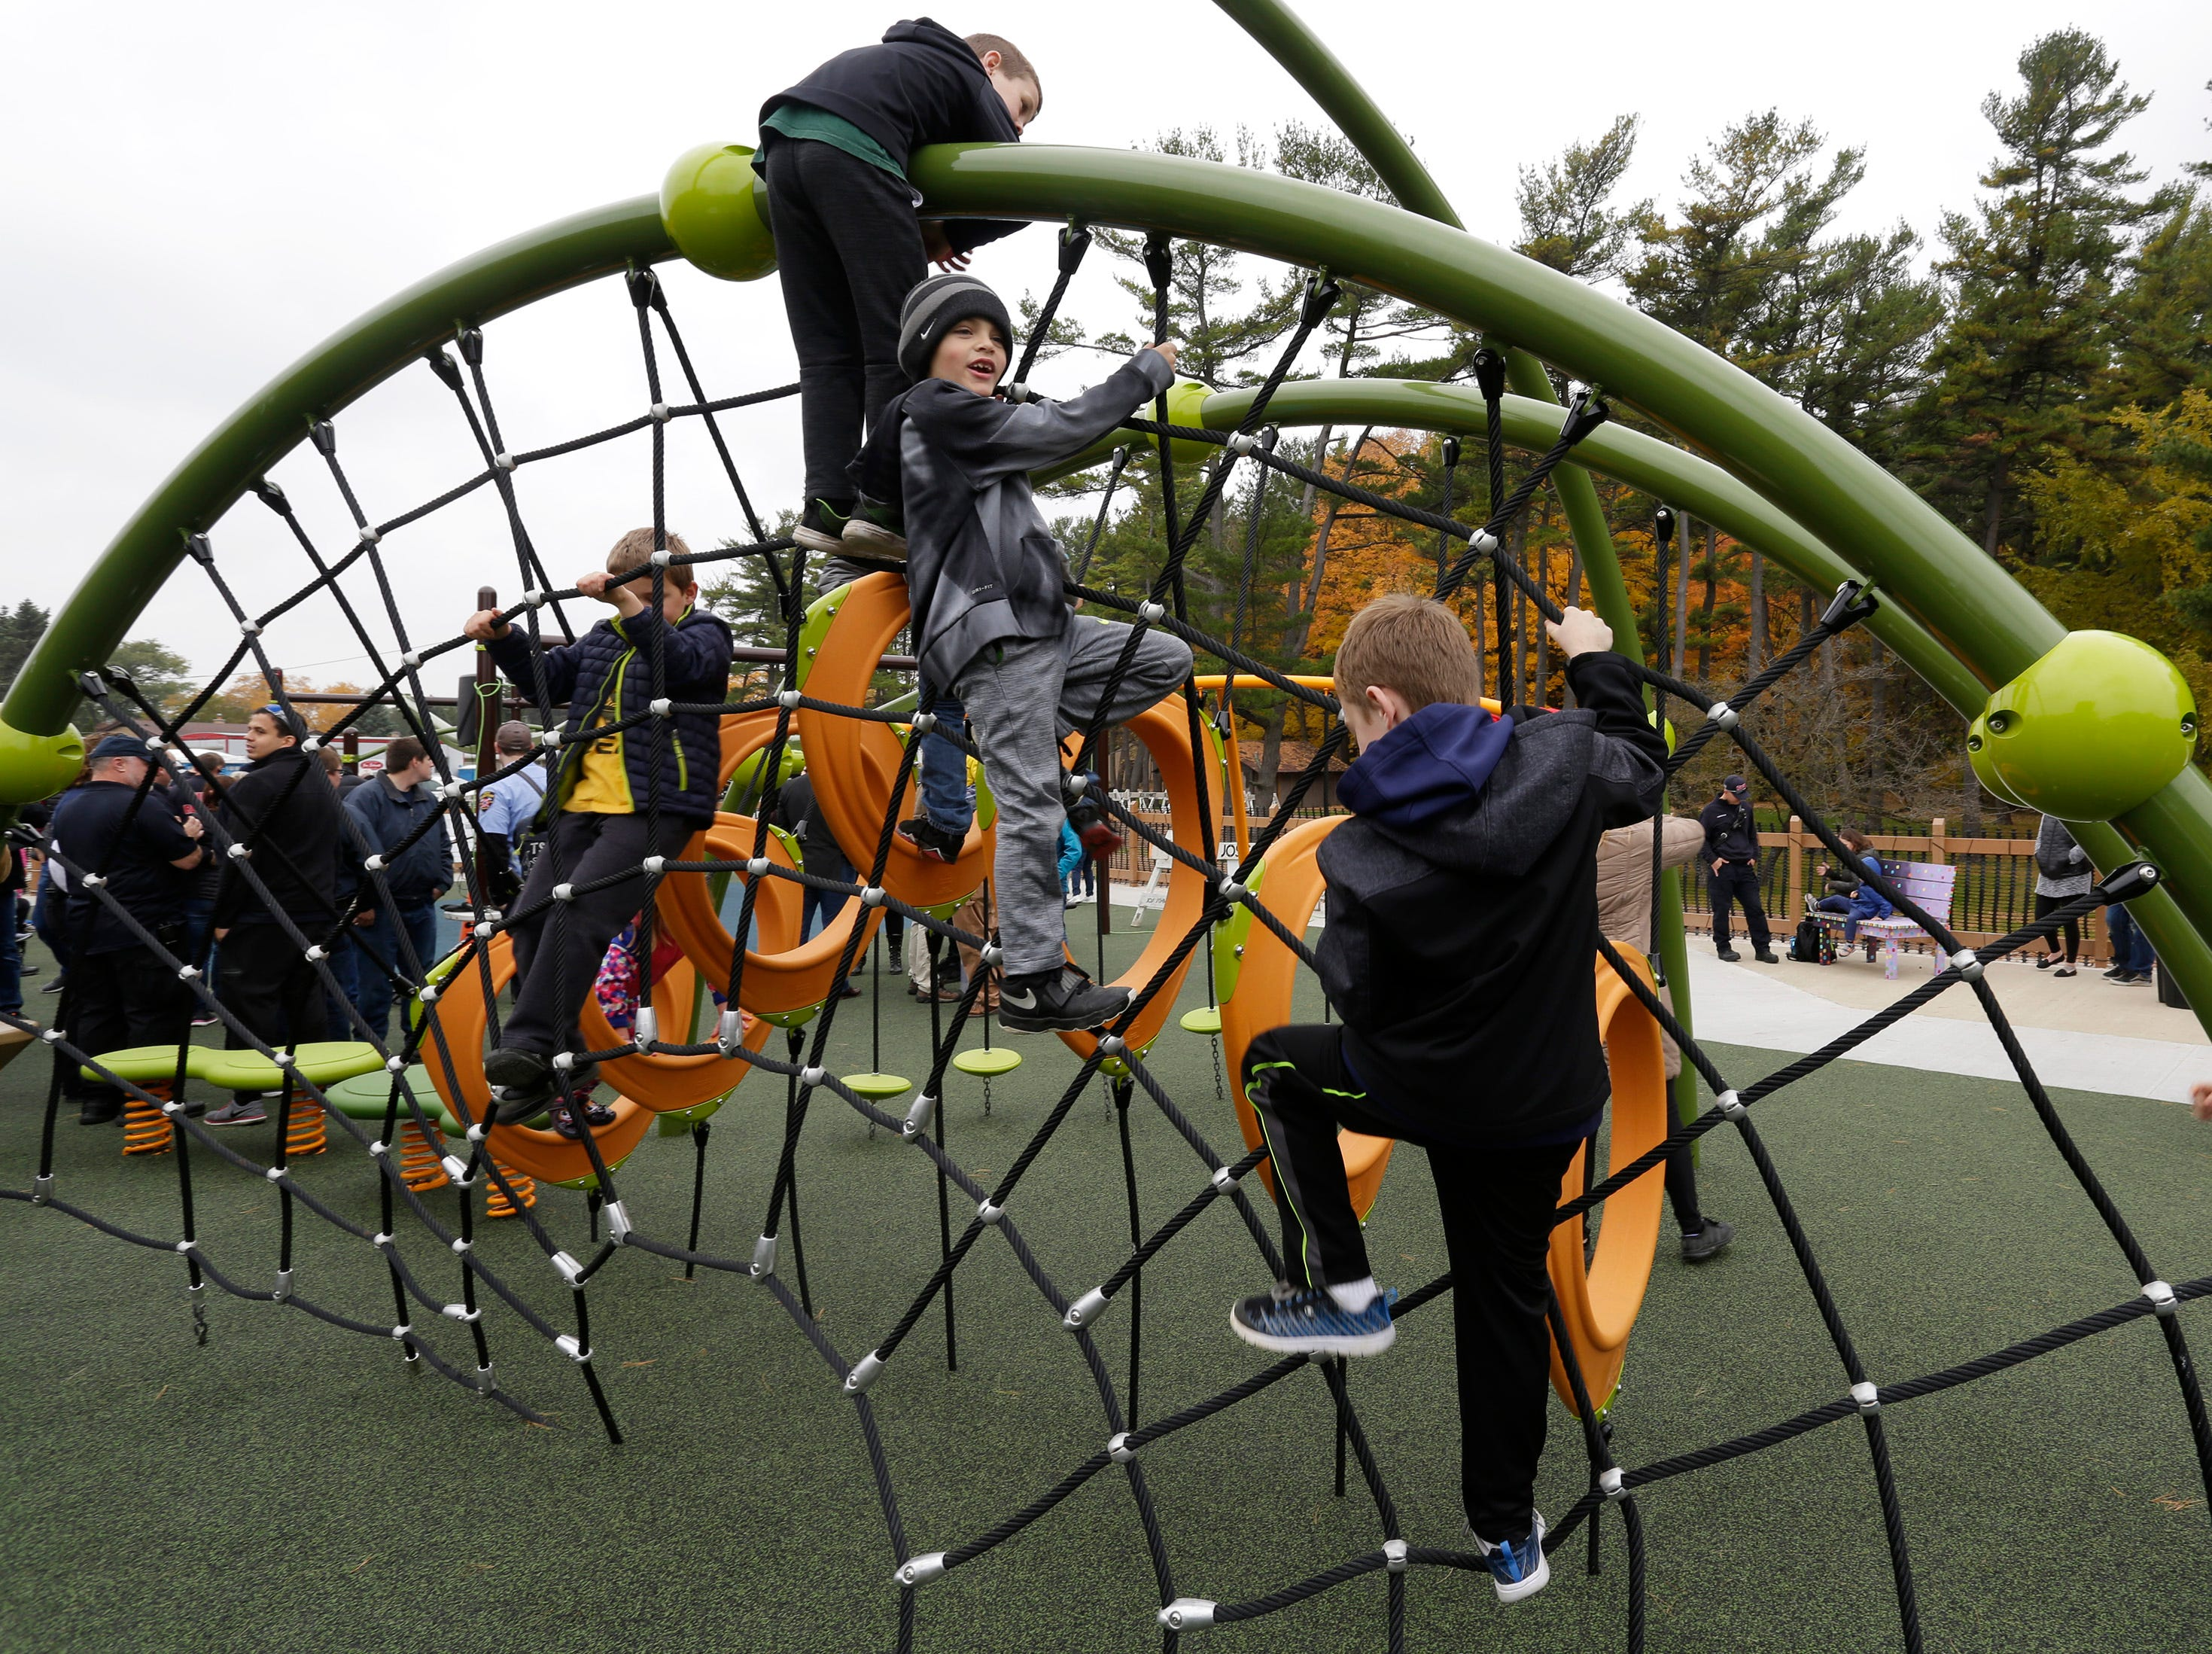 Children crawl about the Shaw Family Playground, Saturday, September 27, 2018, in Sheboygan, Wis. The playground held a ribbon cutting event to showcase the adaptive playground that is accessible for children of all physical abilities.